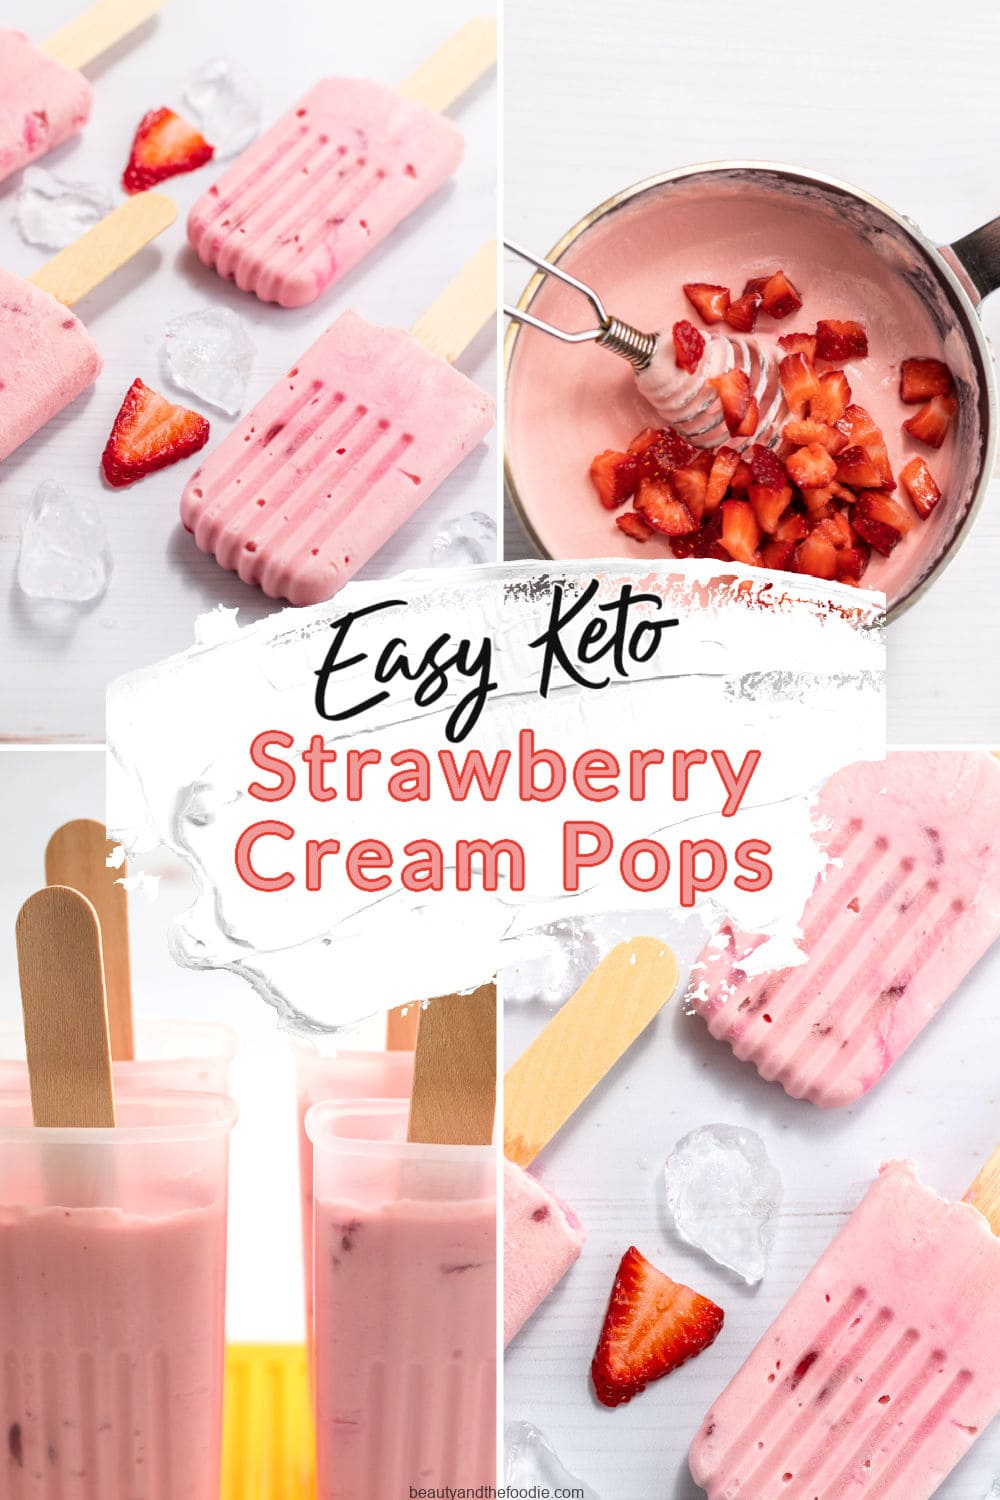 Keto strawberry cream pops with photos showing instructions.